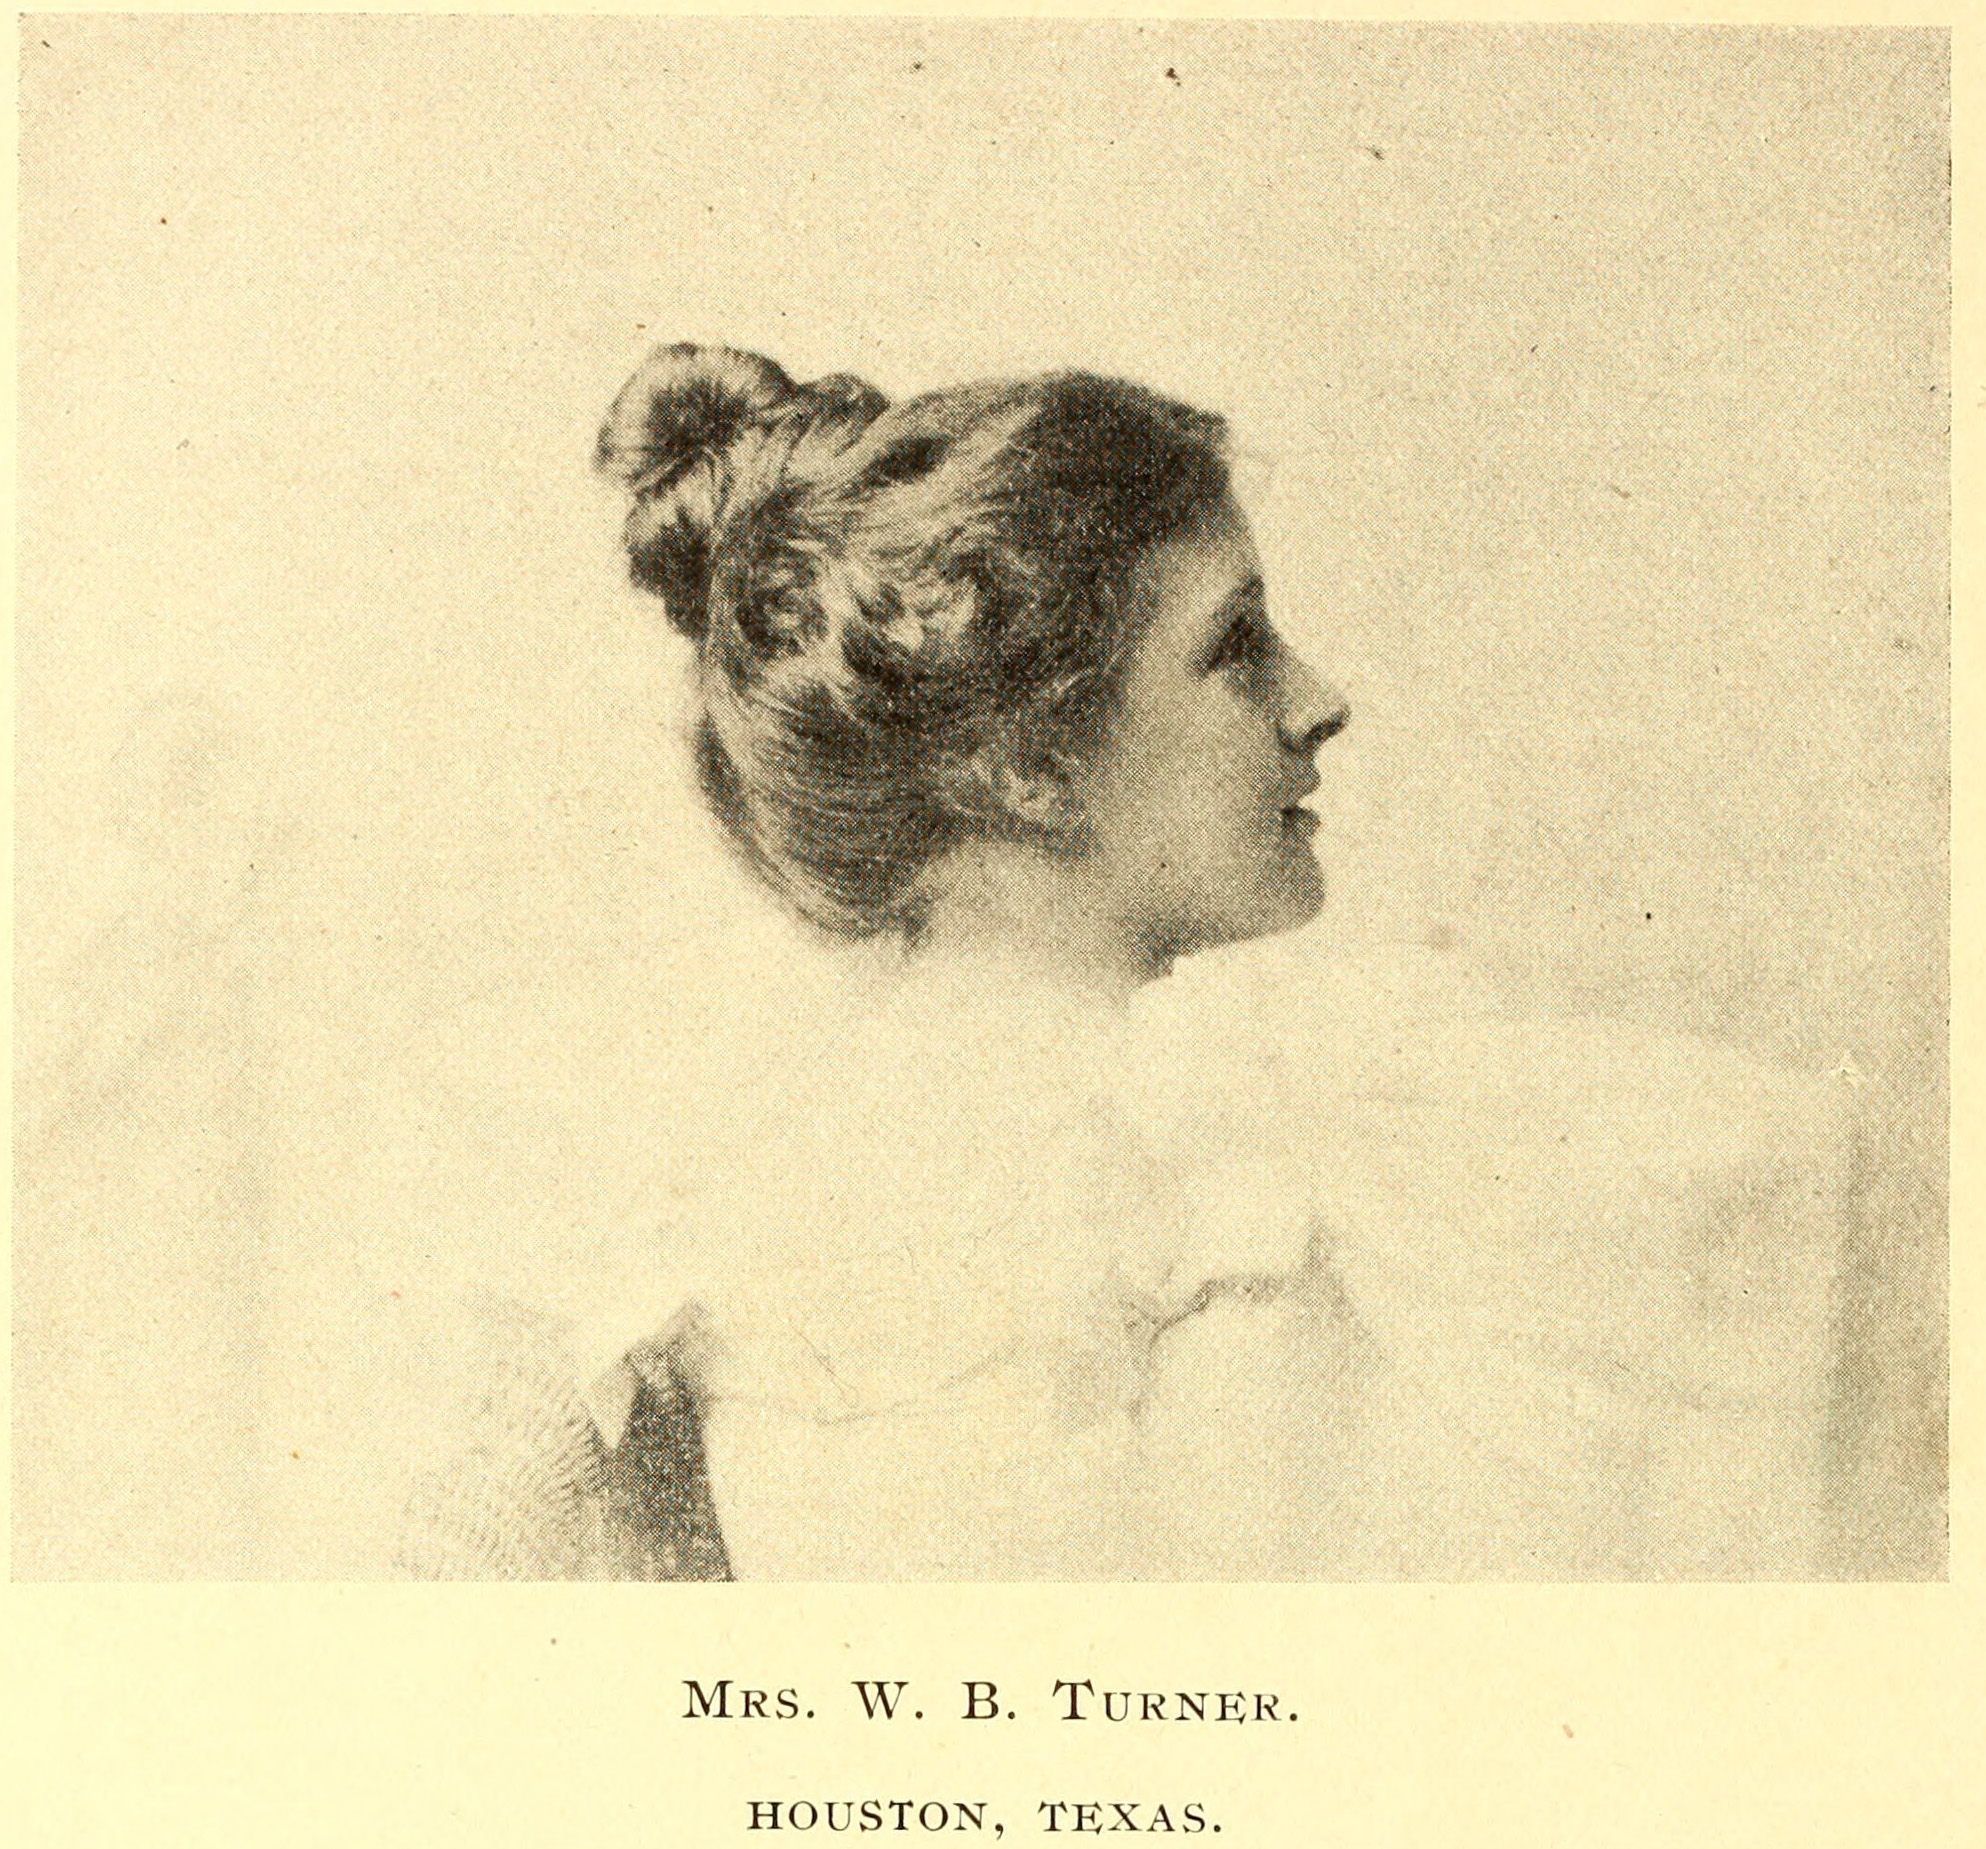 Mrs. W. B. Turner of Houston TX